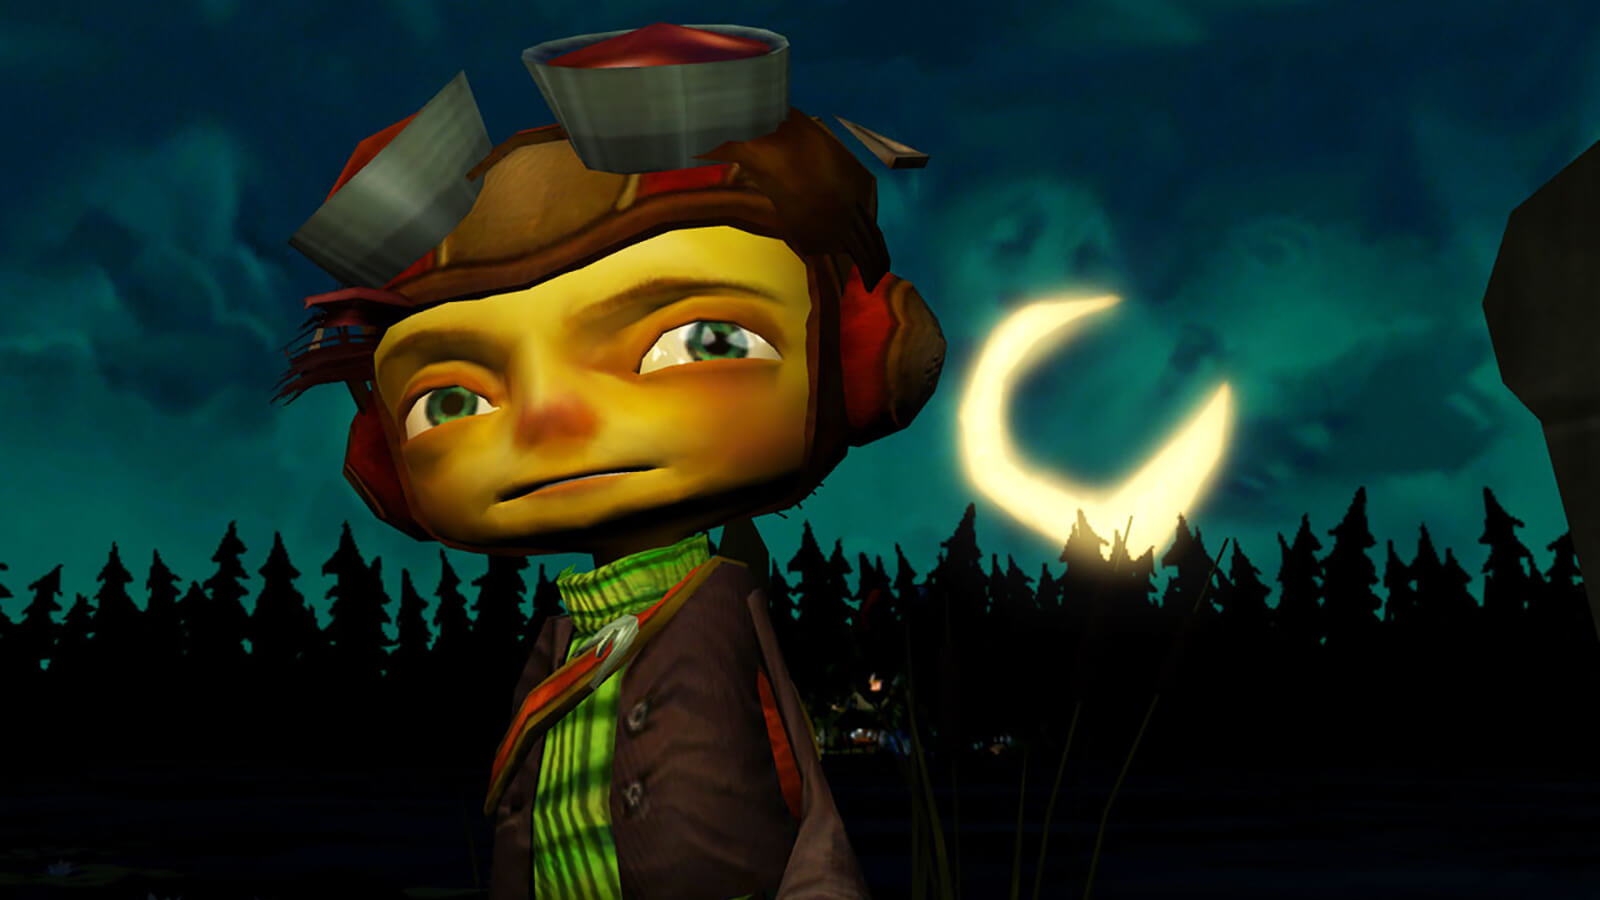 A character in stands in front of the woods with a crescent moon in the sky.